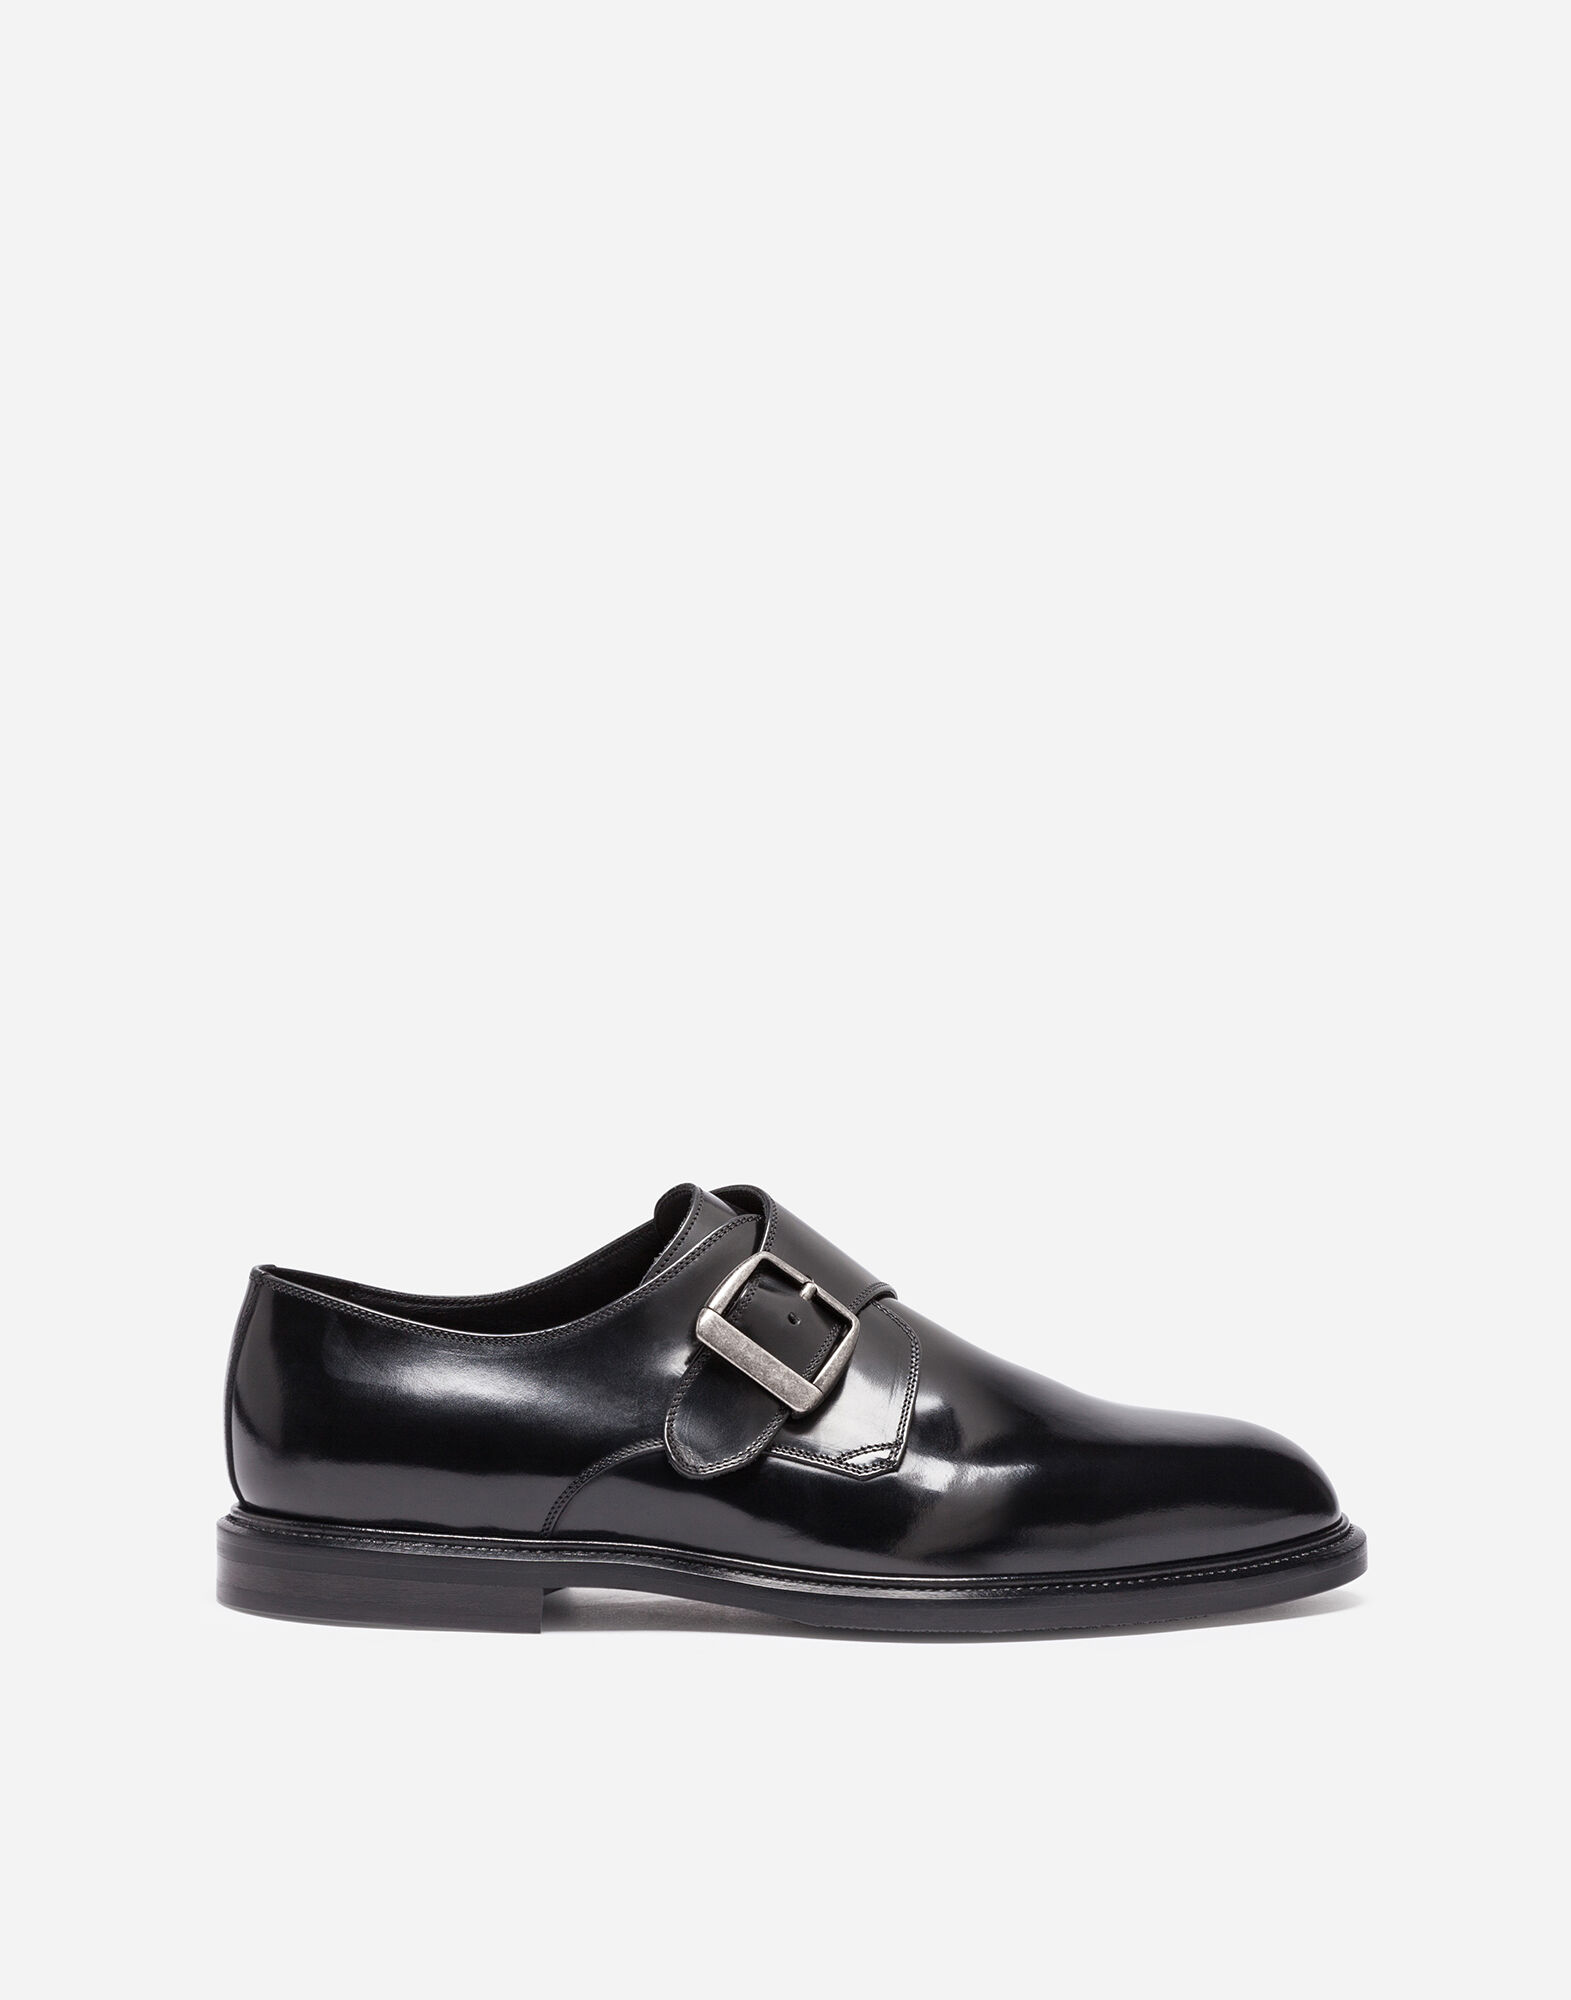 LEATHER MONK STRAP SHOES